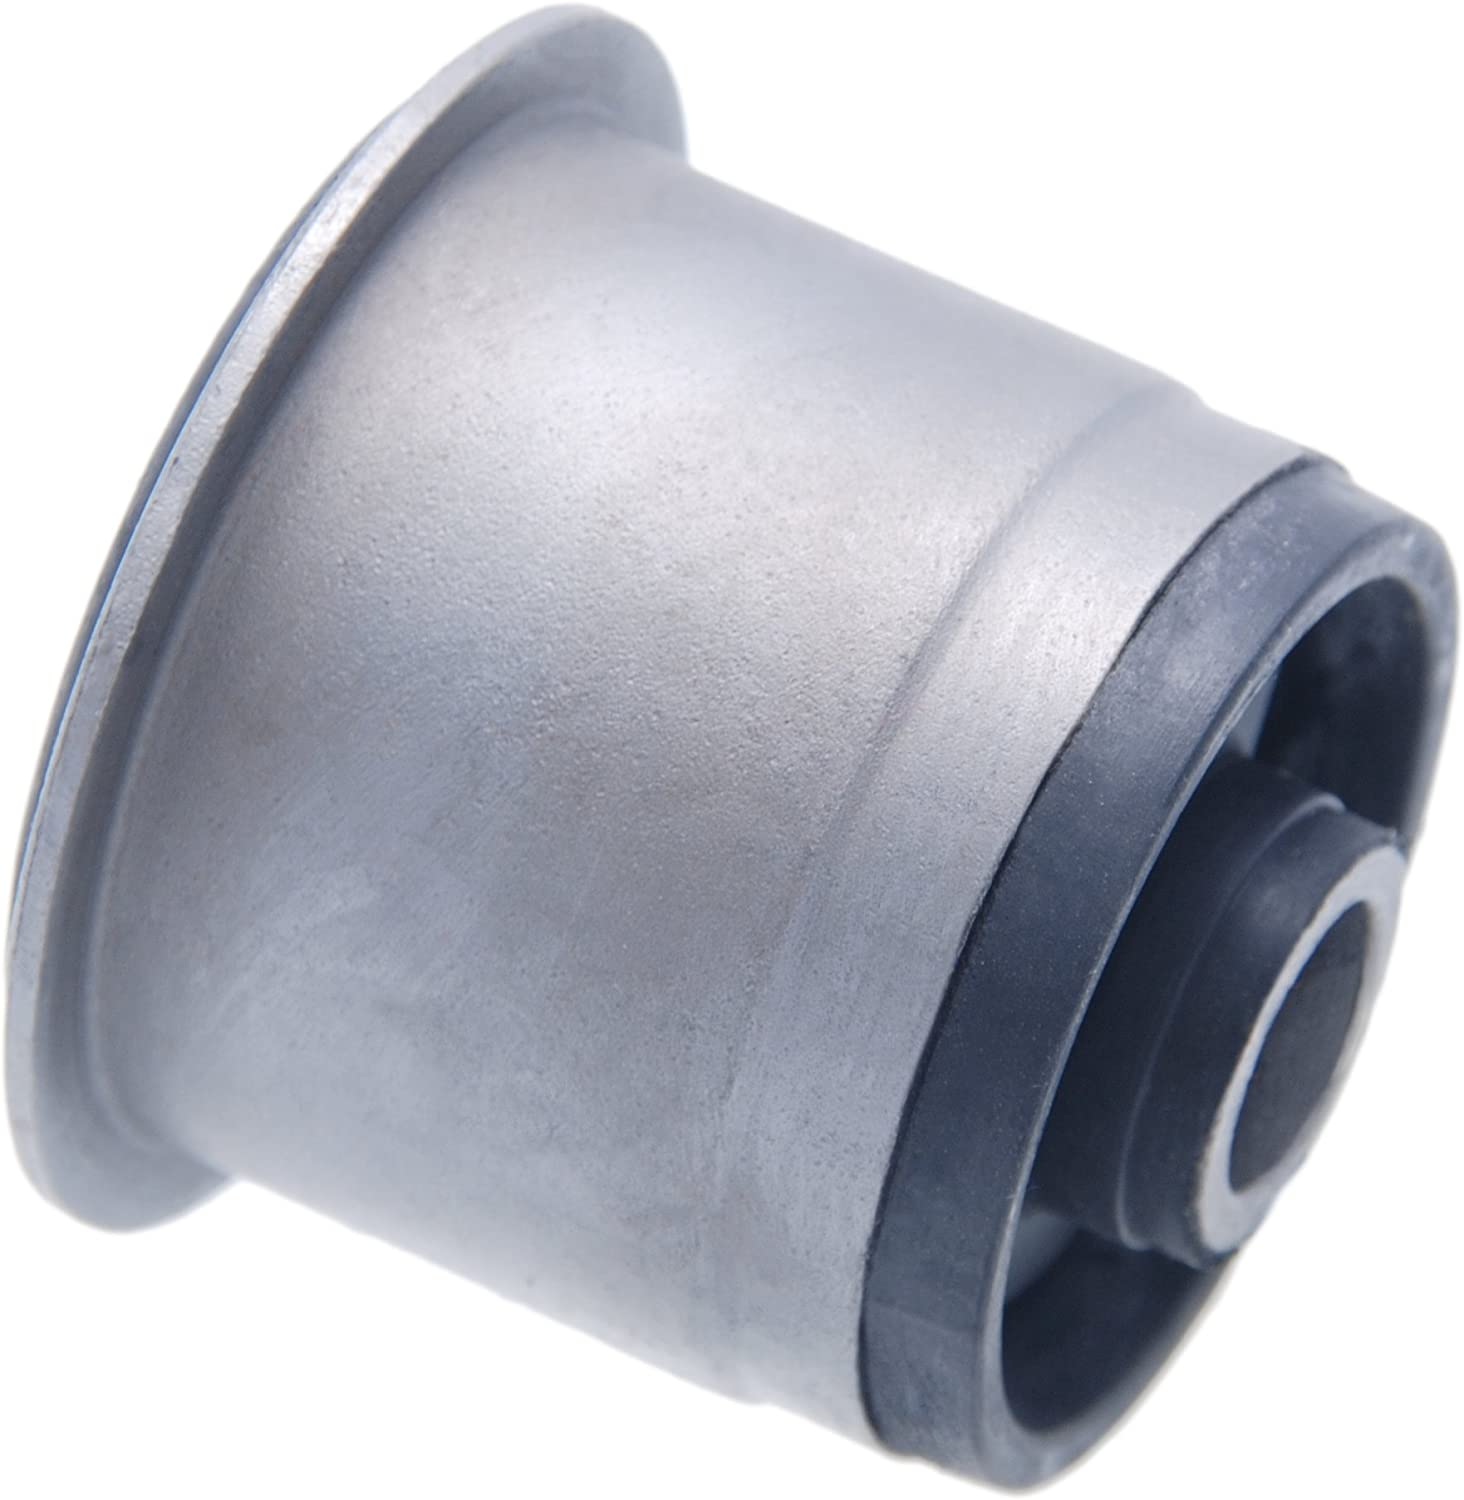 OFFicial mail order 554199Y301 wholesale - Arm Bushing for F Differential Nissan For Mount